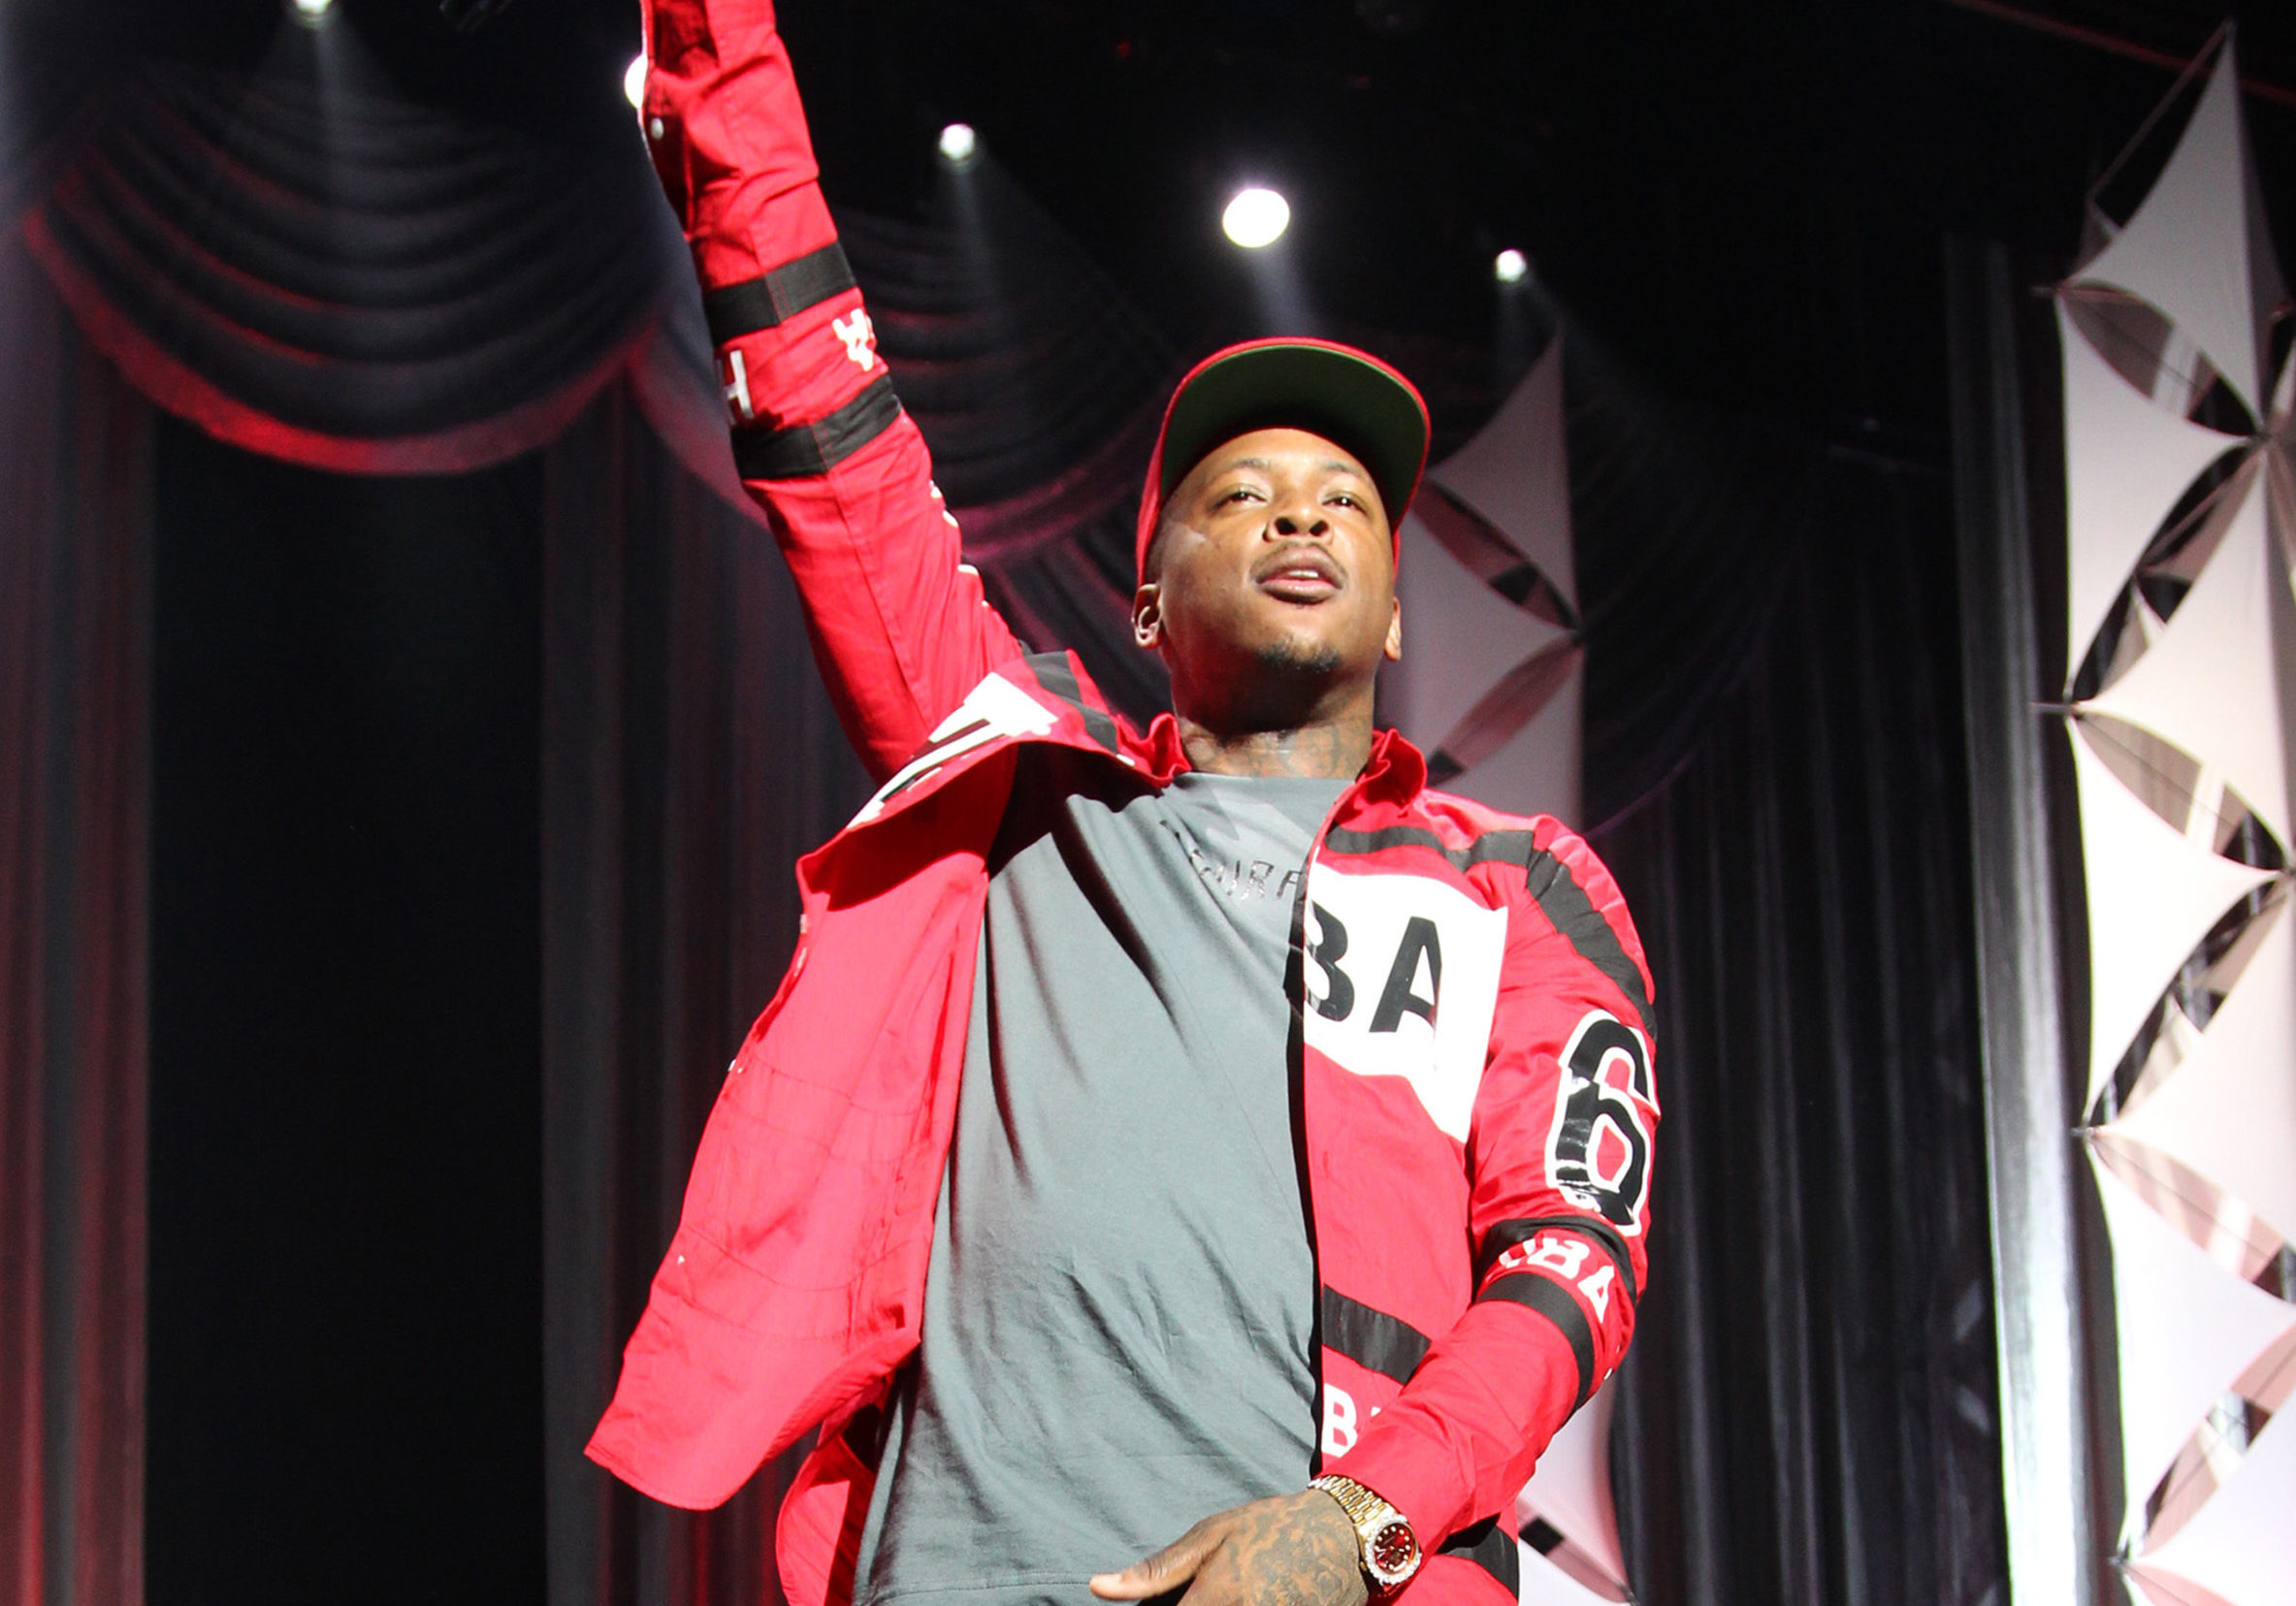 Stormi Daniels Joins Rapper YG On Stage To This President Donald Trump